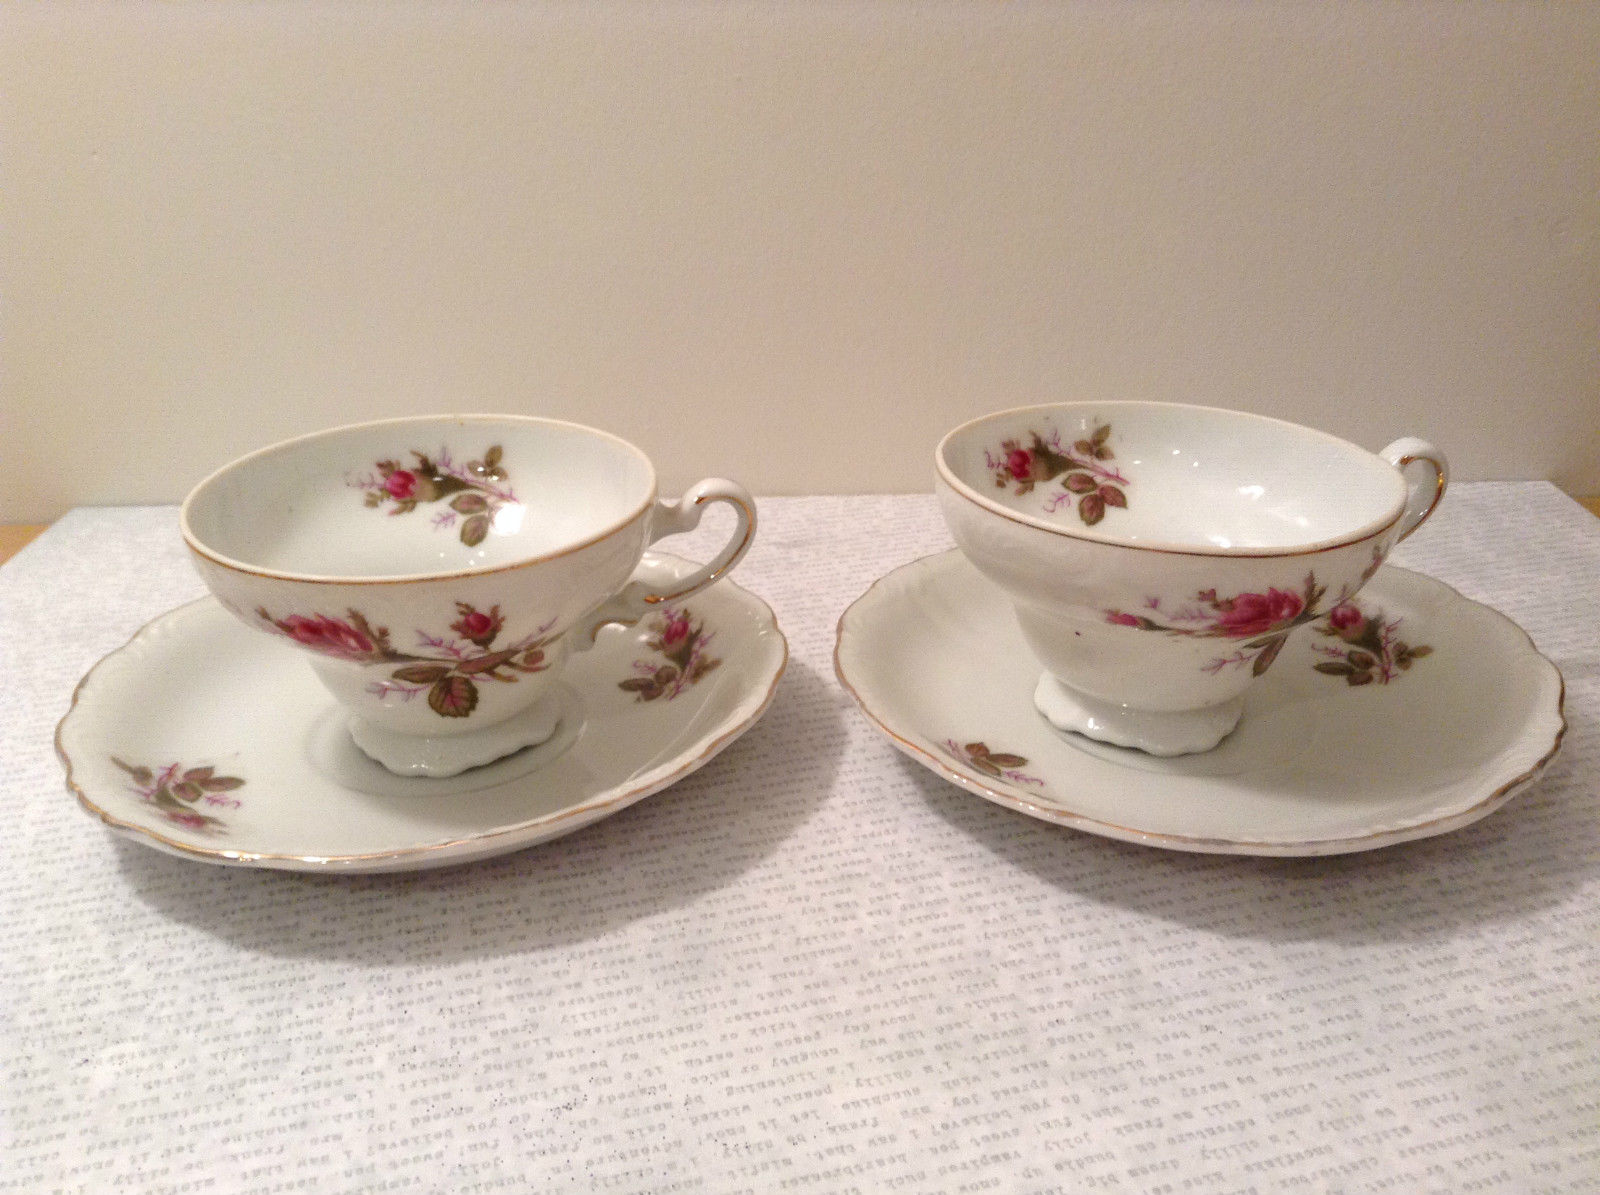 Four Piece Vintage Gilded Teacup and Saucer Set Floral Pattern Bone China